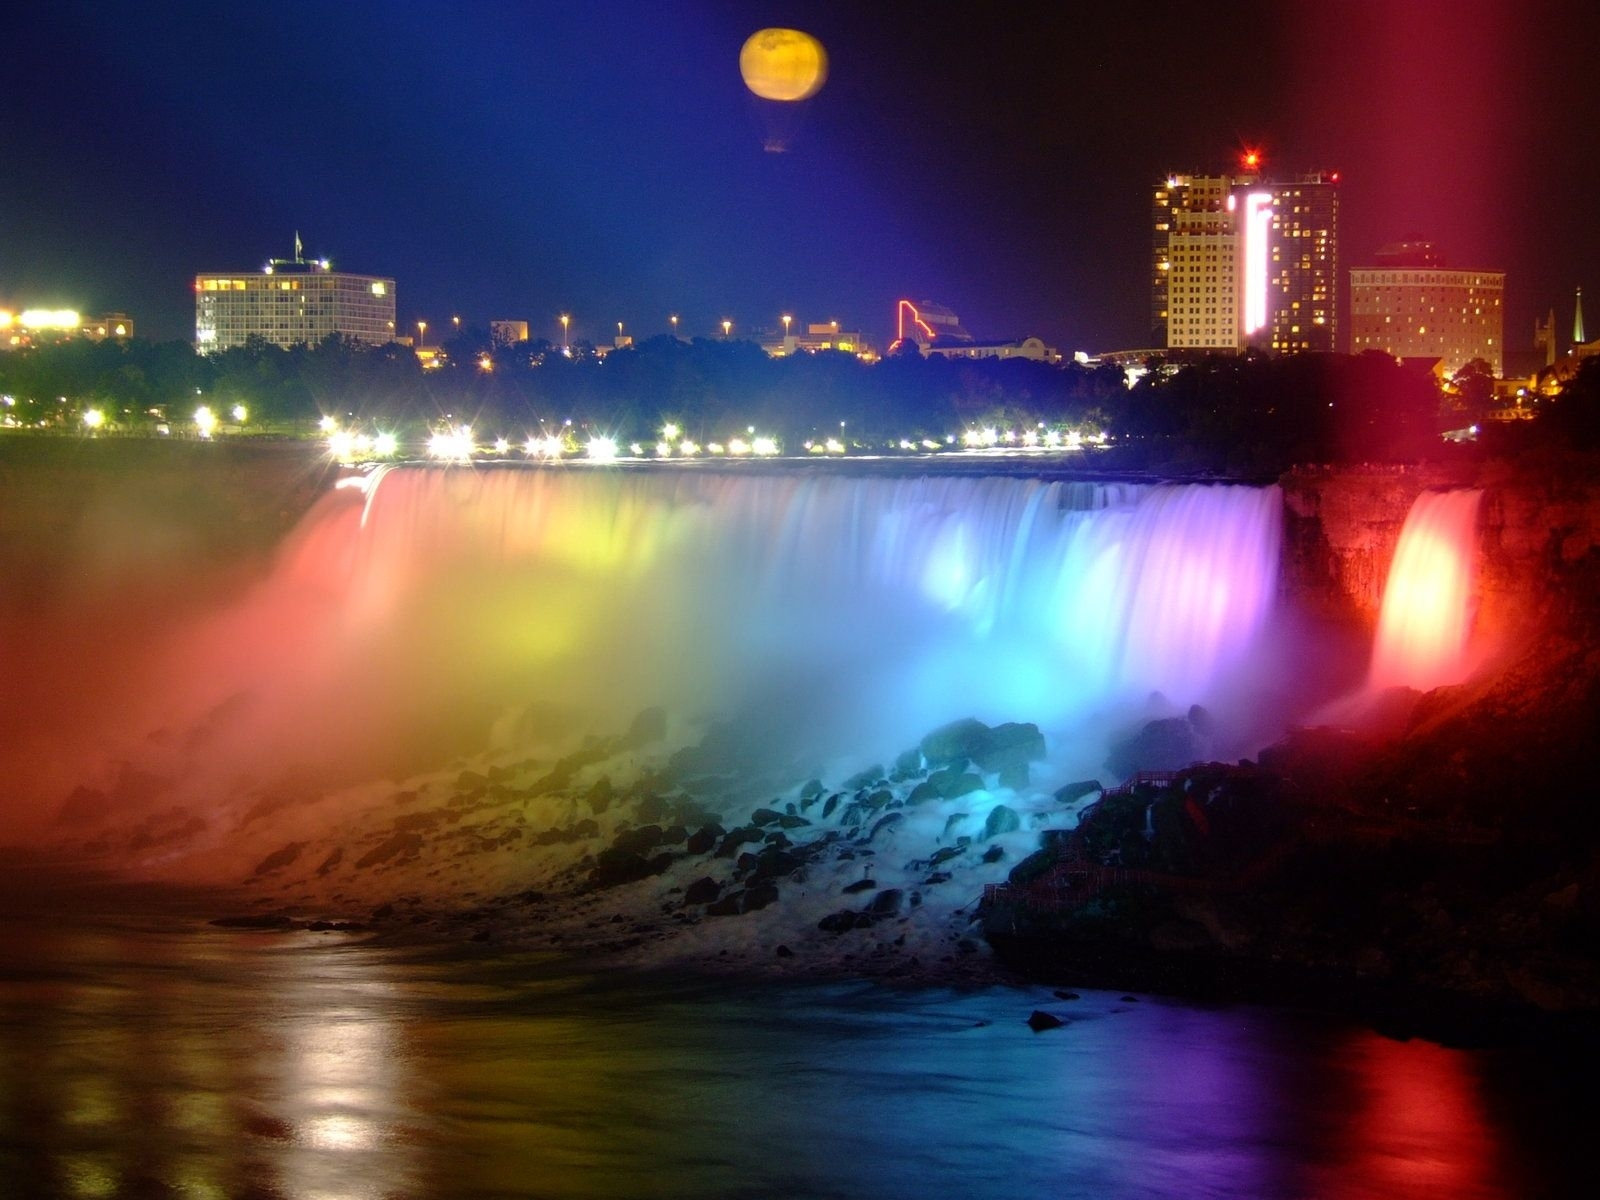 niagara falls is the collective name for three waterfalls that